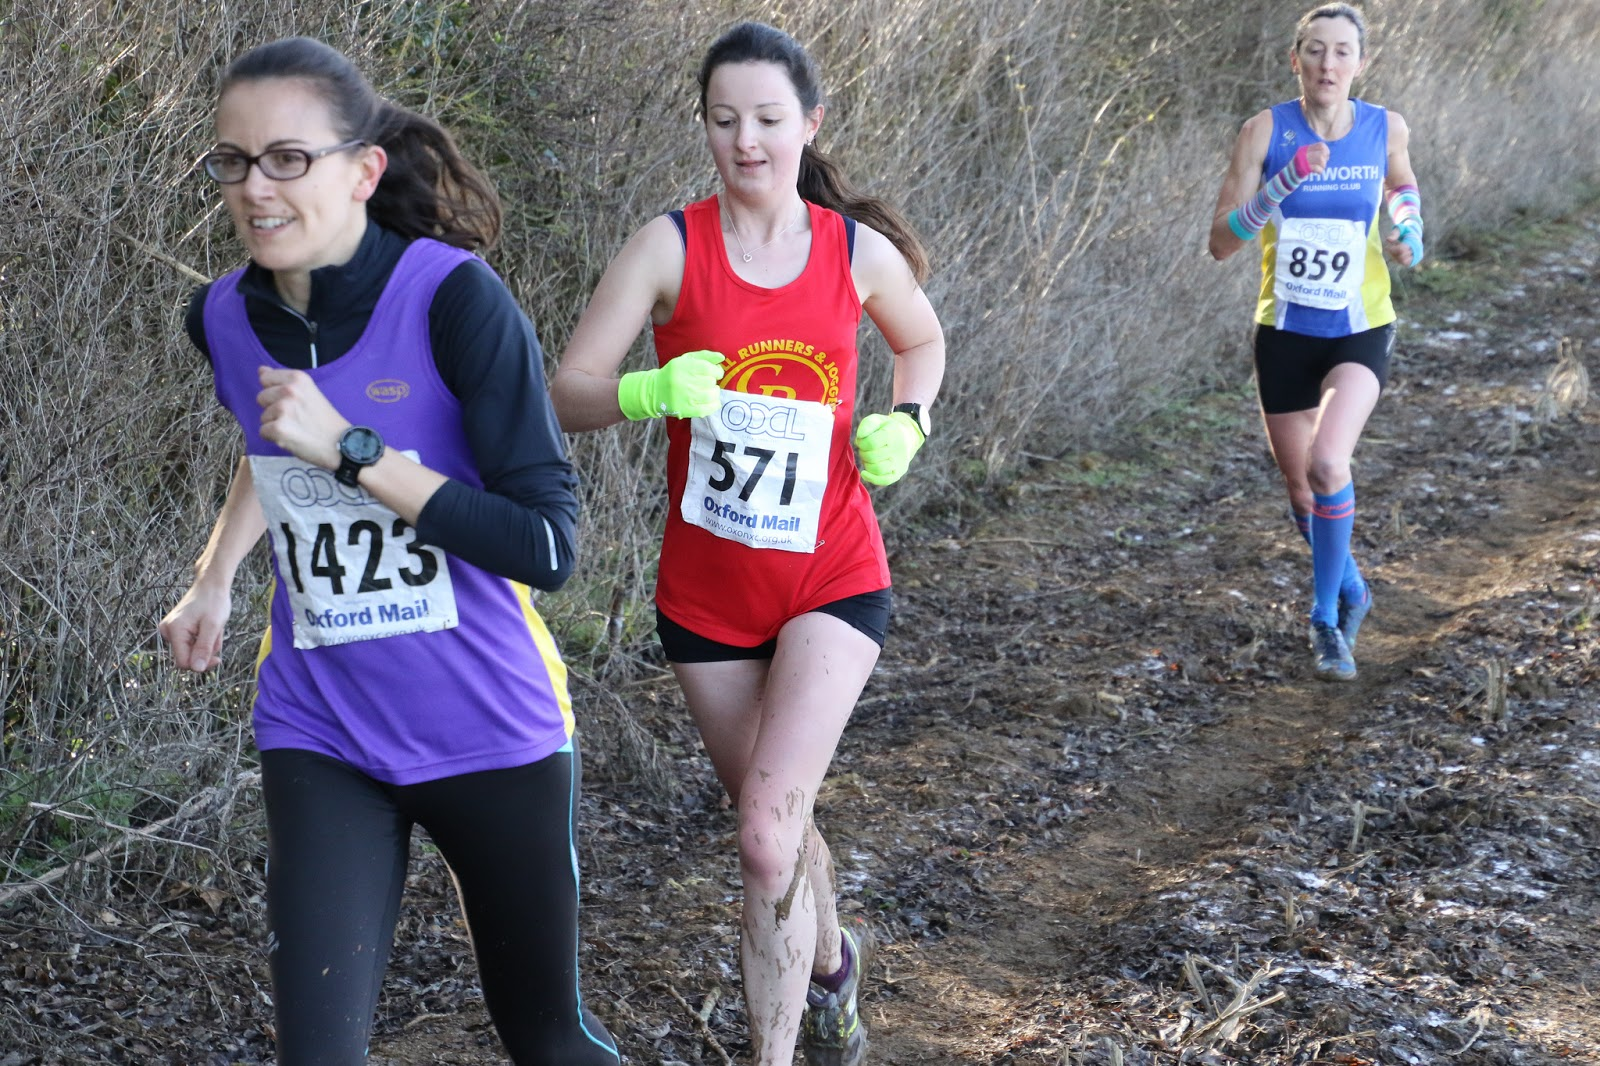 Running cross country in Oxon league at Addebury